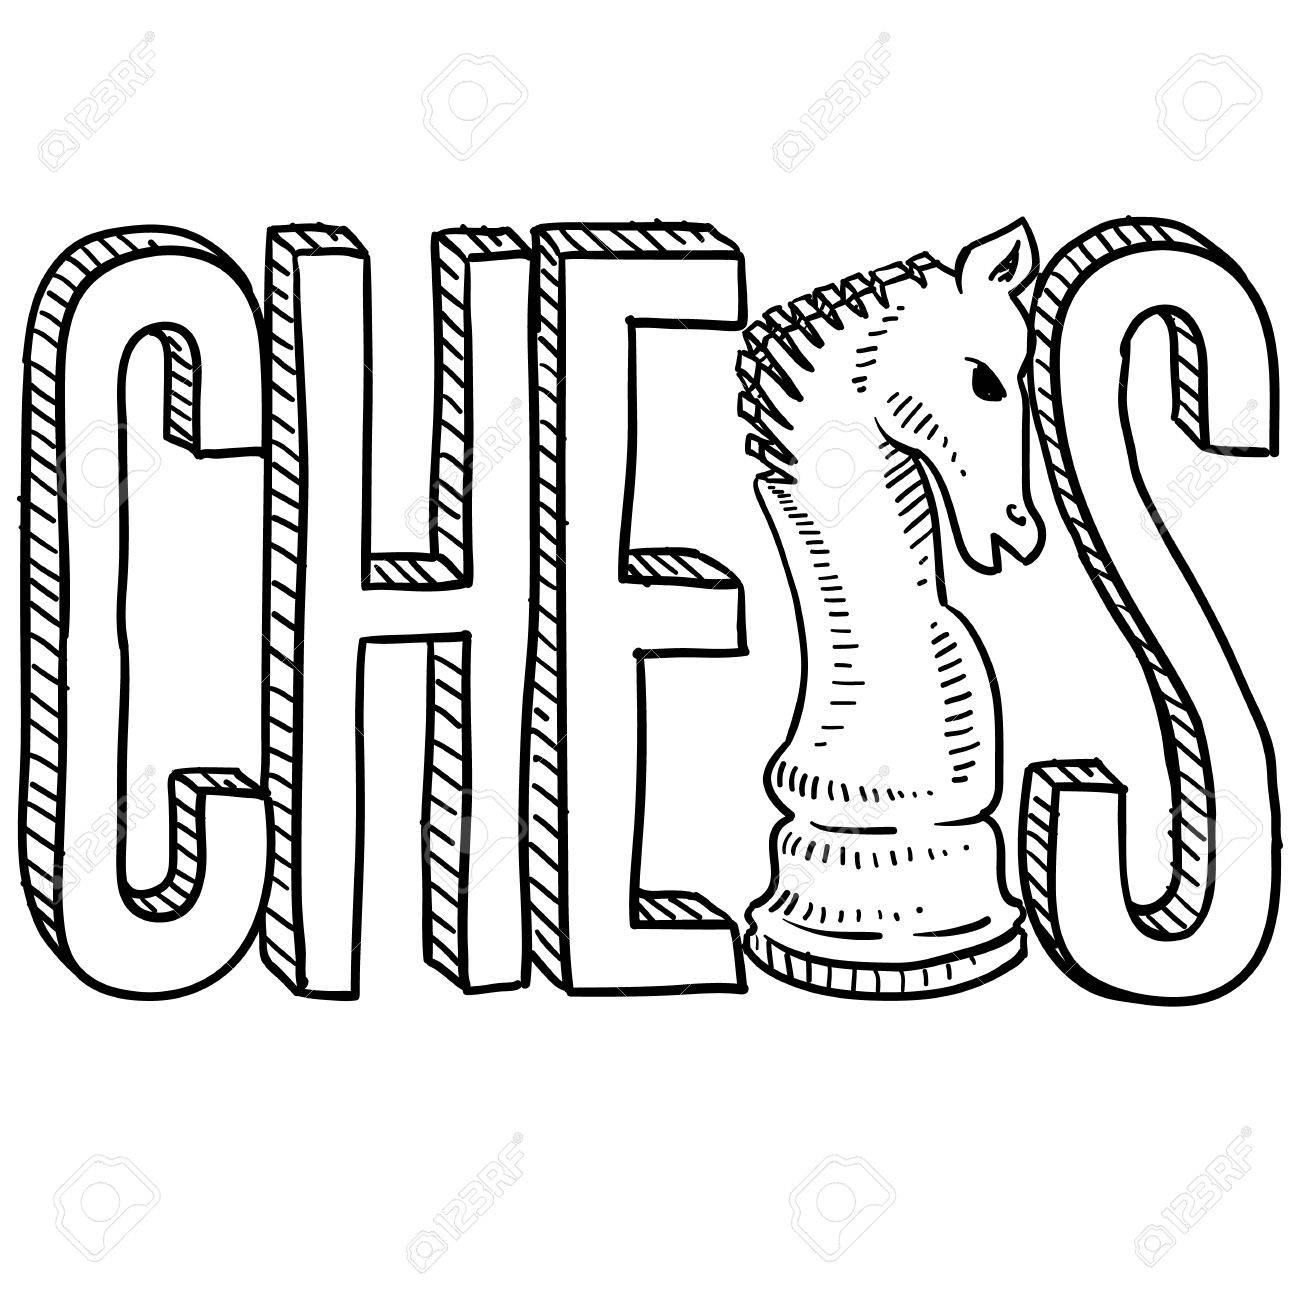 1300x1300 Doodle Style Chess Illustration In Vector Format Includes Text